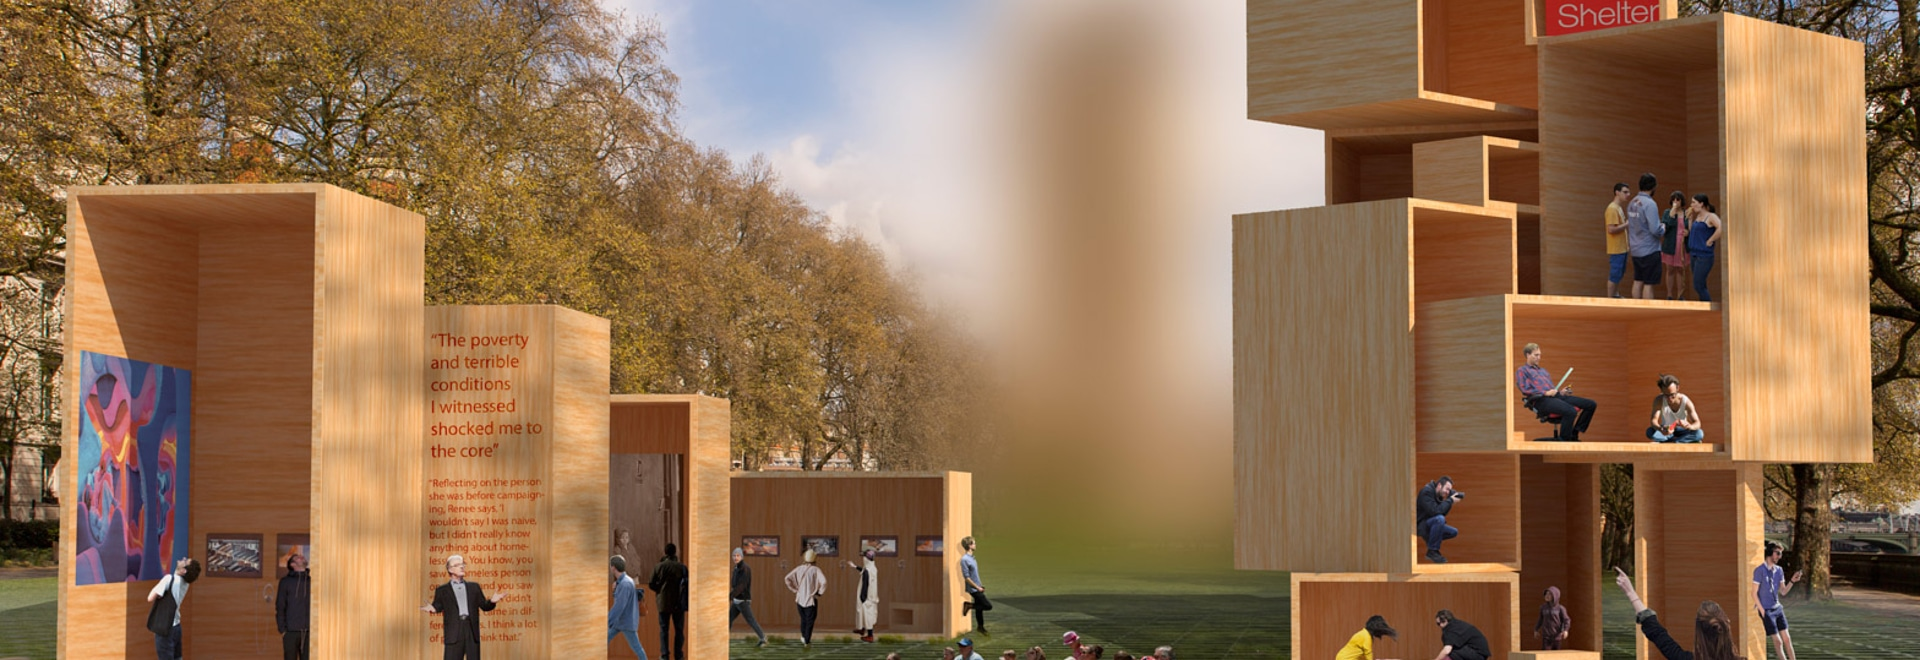 The Baboushka boxes installation by dRMM aims to address the topic of housing and the future of living spaces